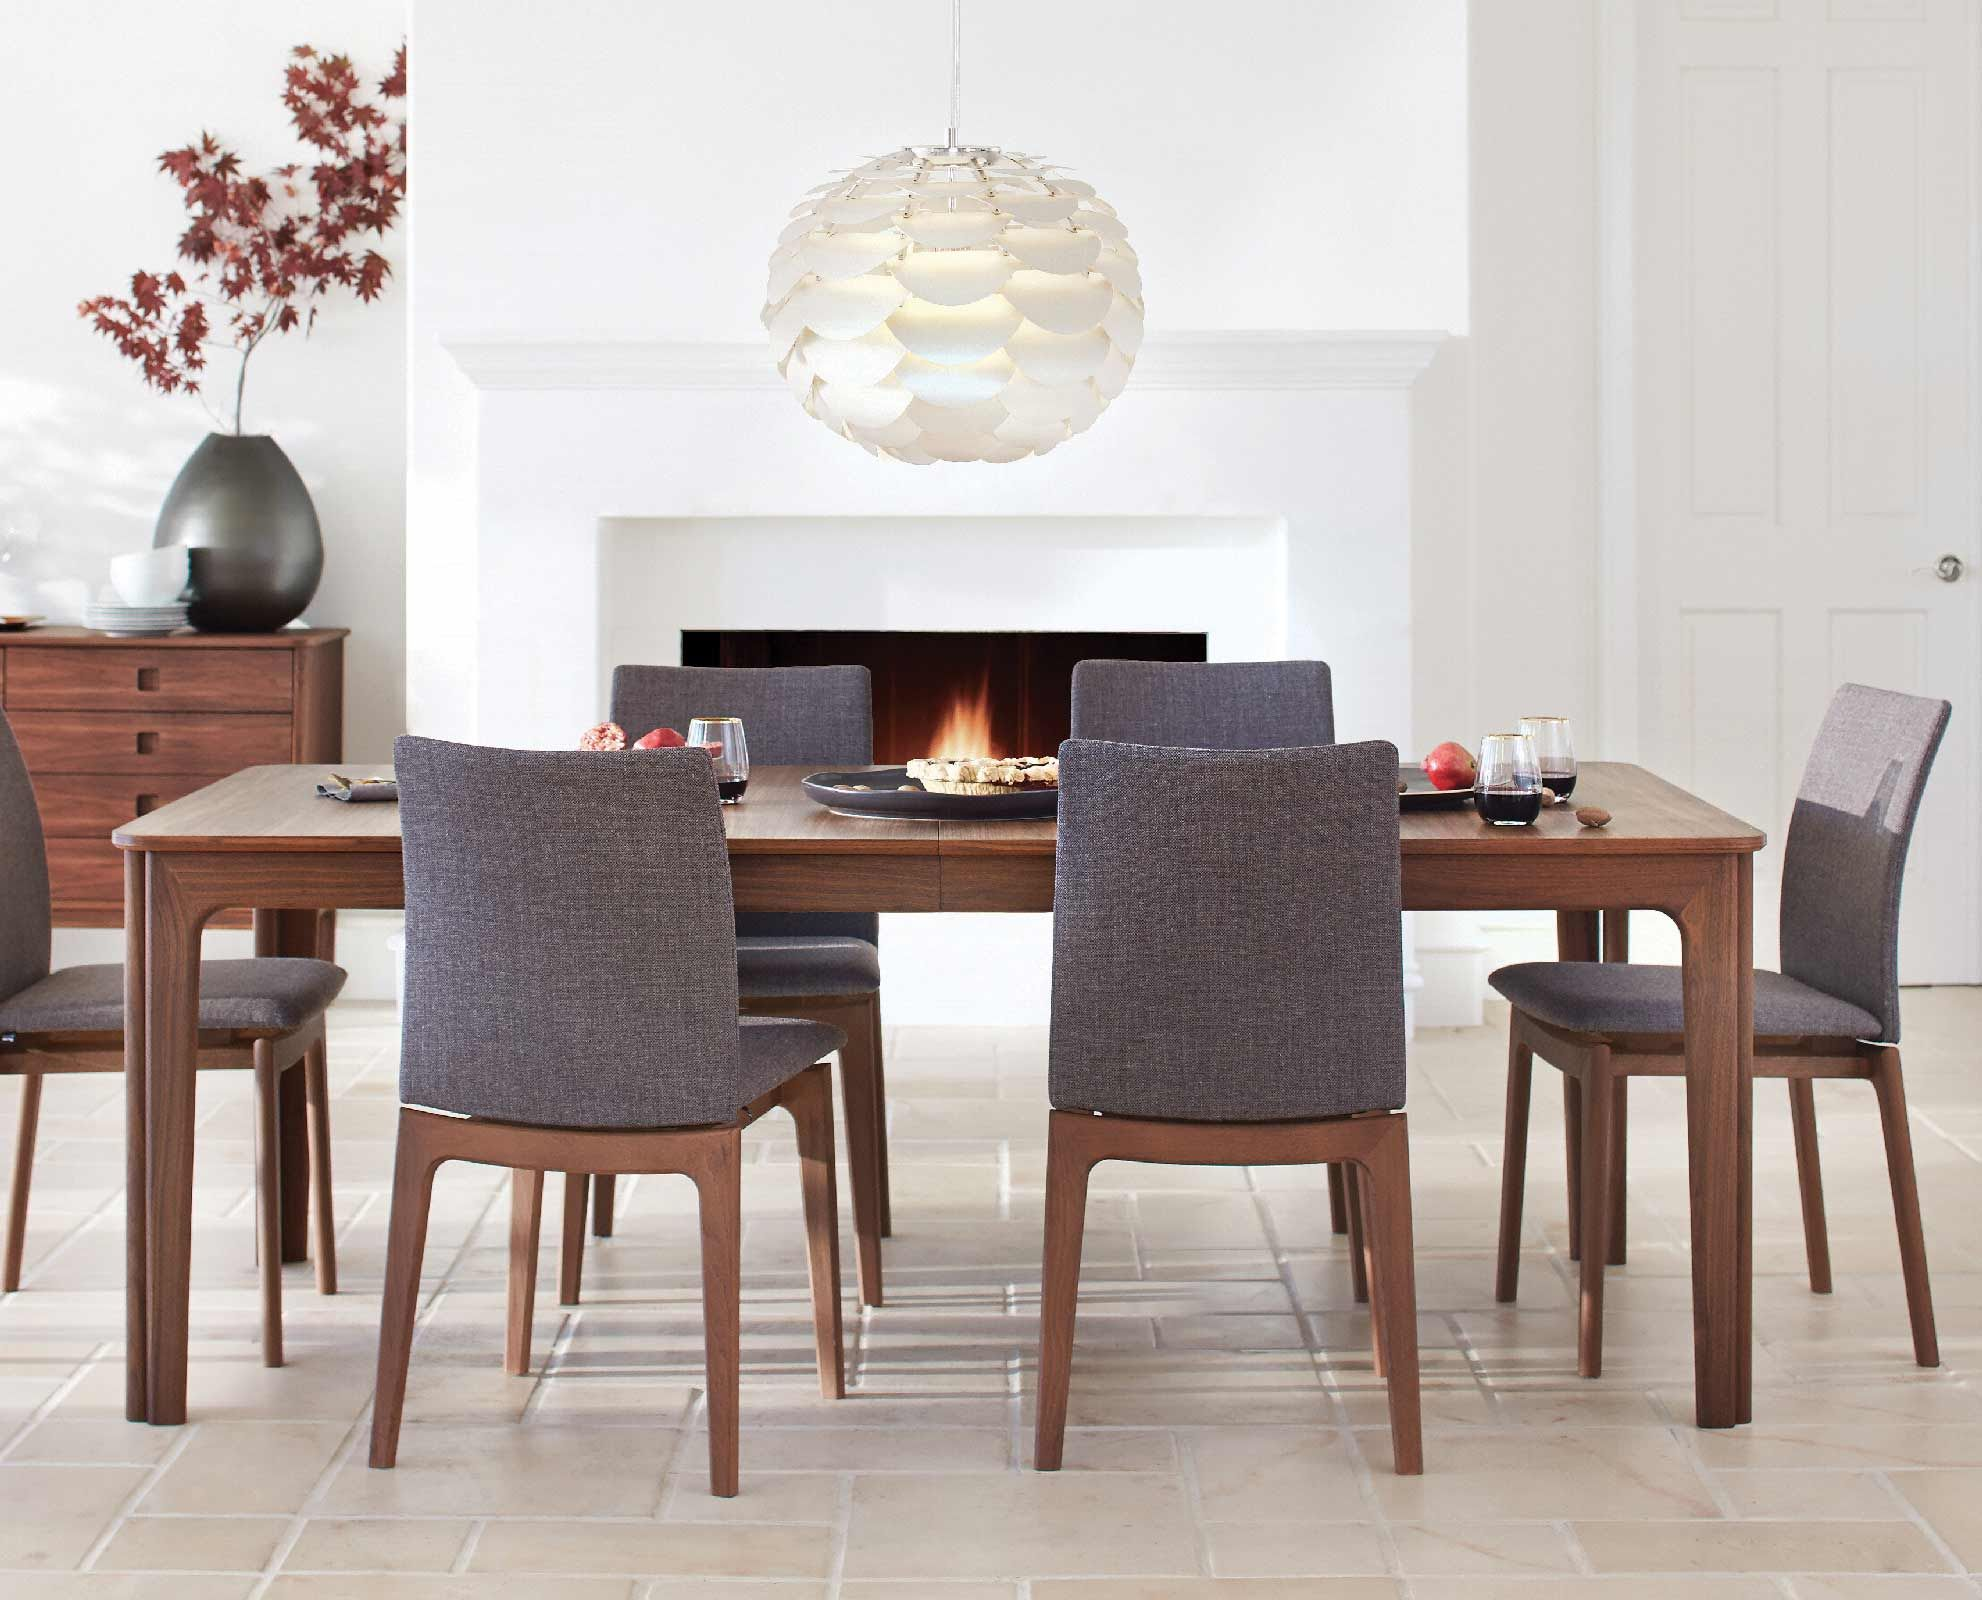 Dania sundby extension dining table goes from